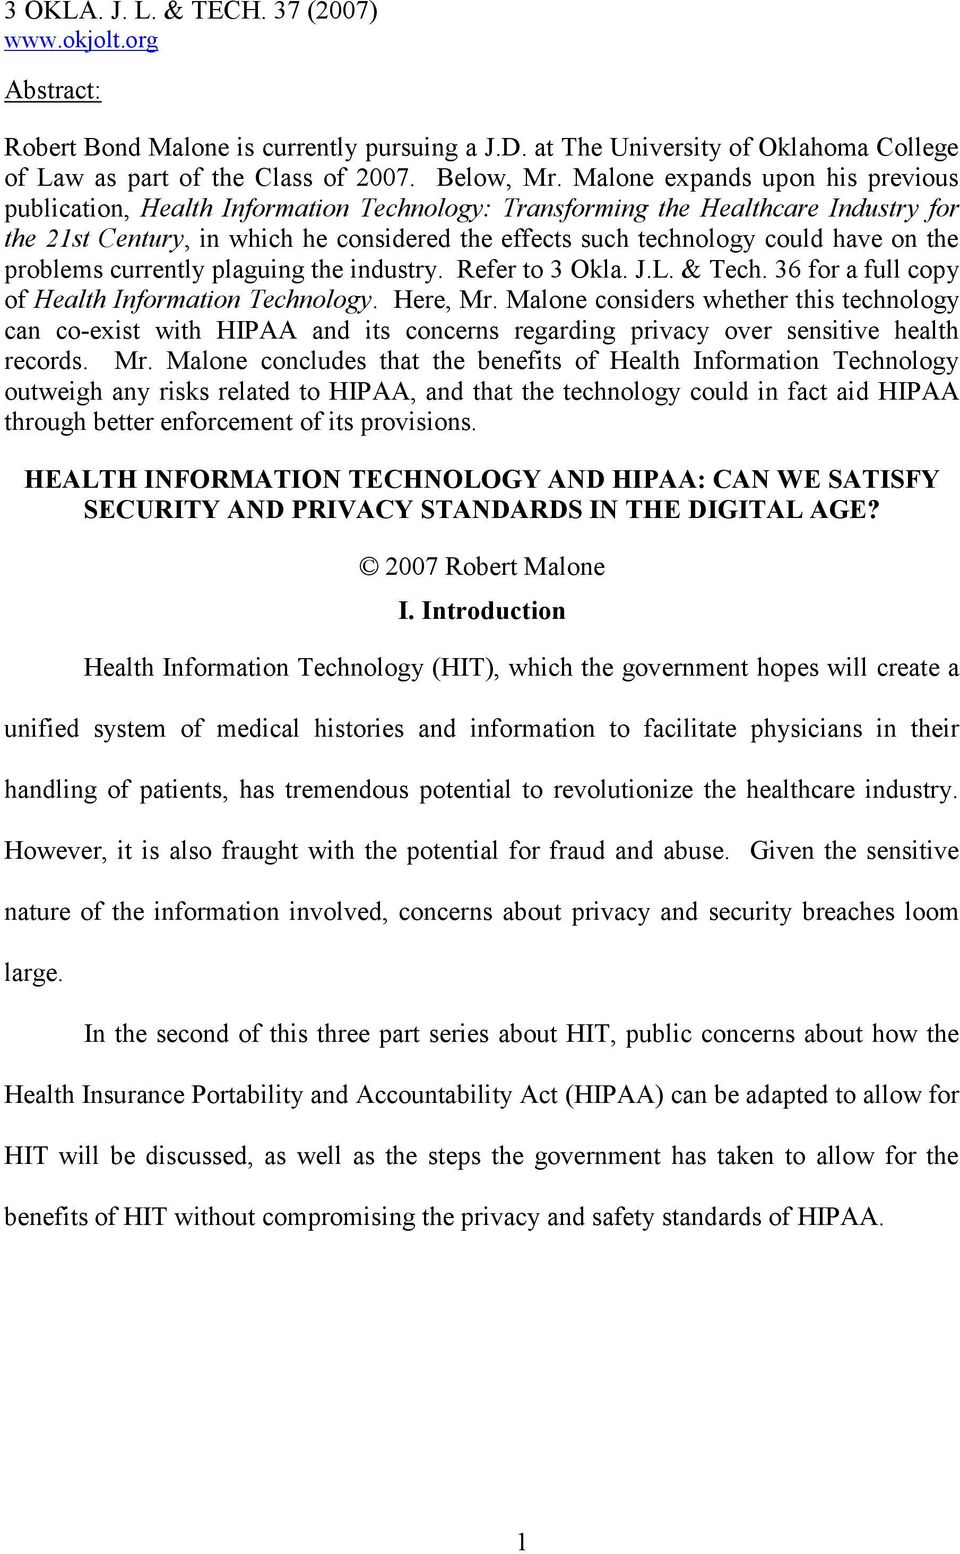 on the problems currently plaguing the industry. Refer to 3 Okla. J.L. & Tech. 36 for a full copy of Health Information Technology. Here, Mr.